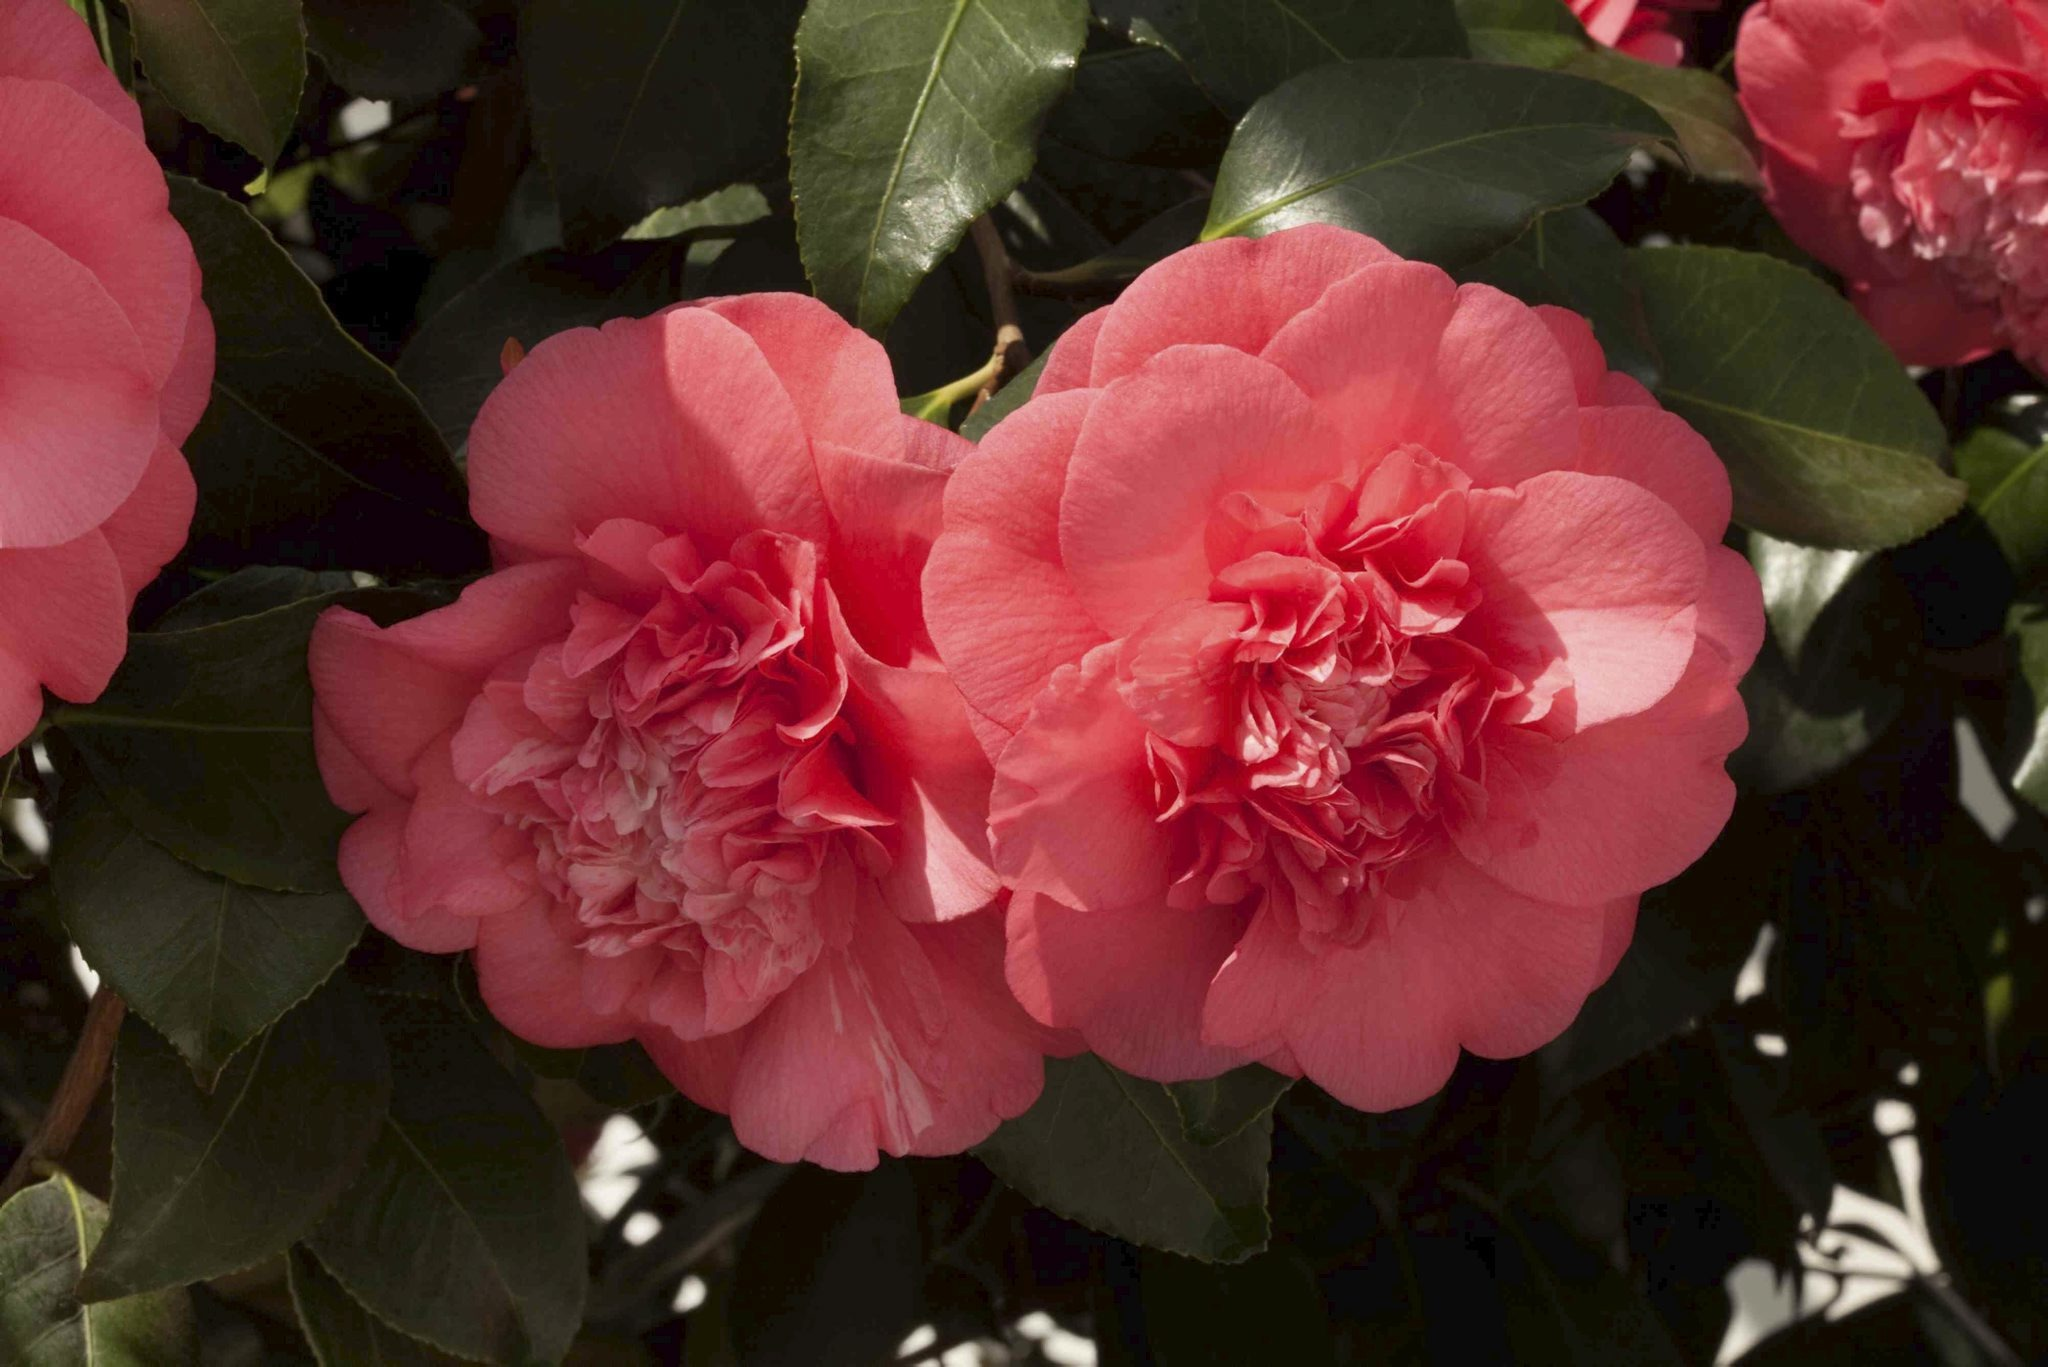 Chiswick House Camellia Show